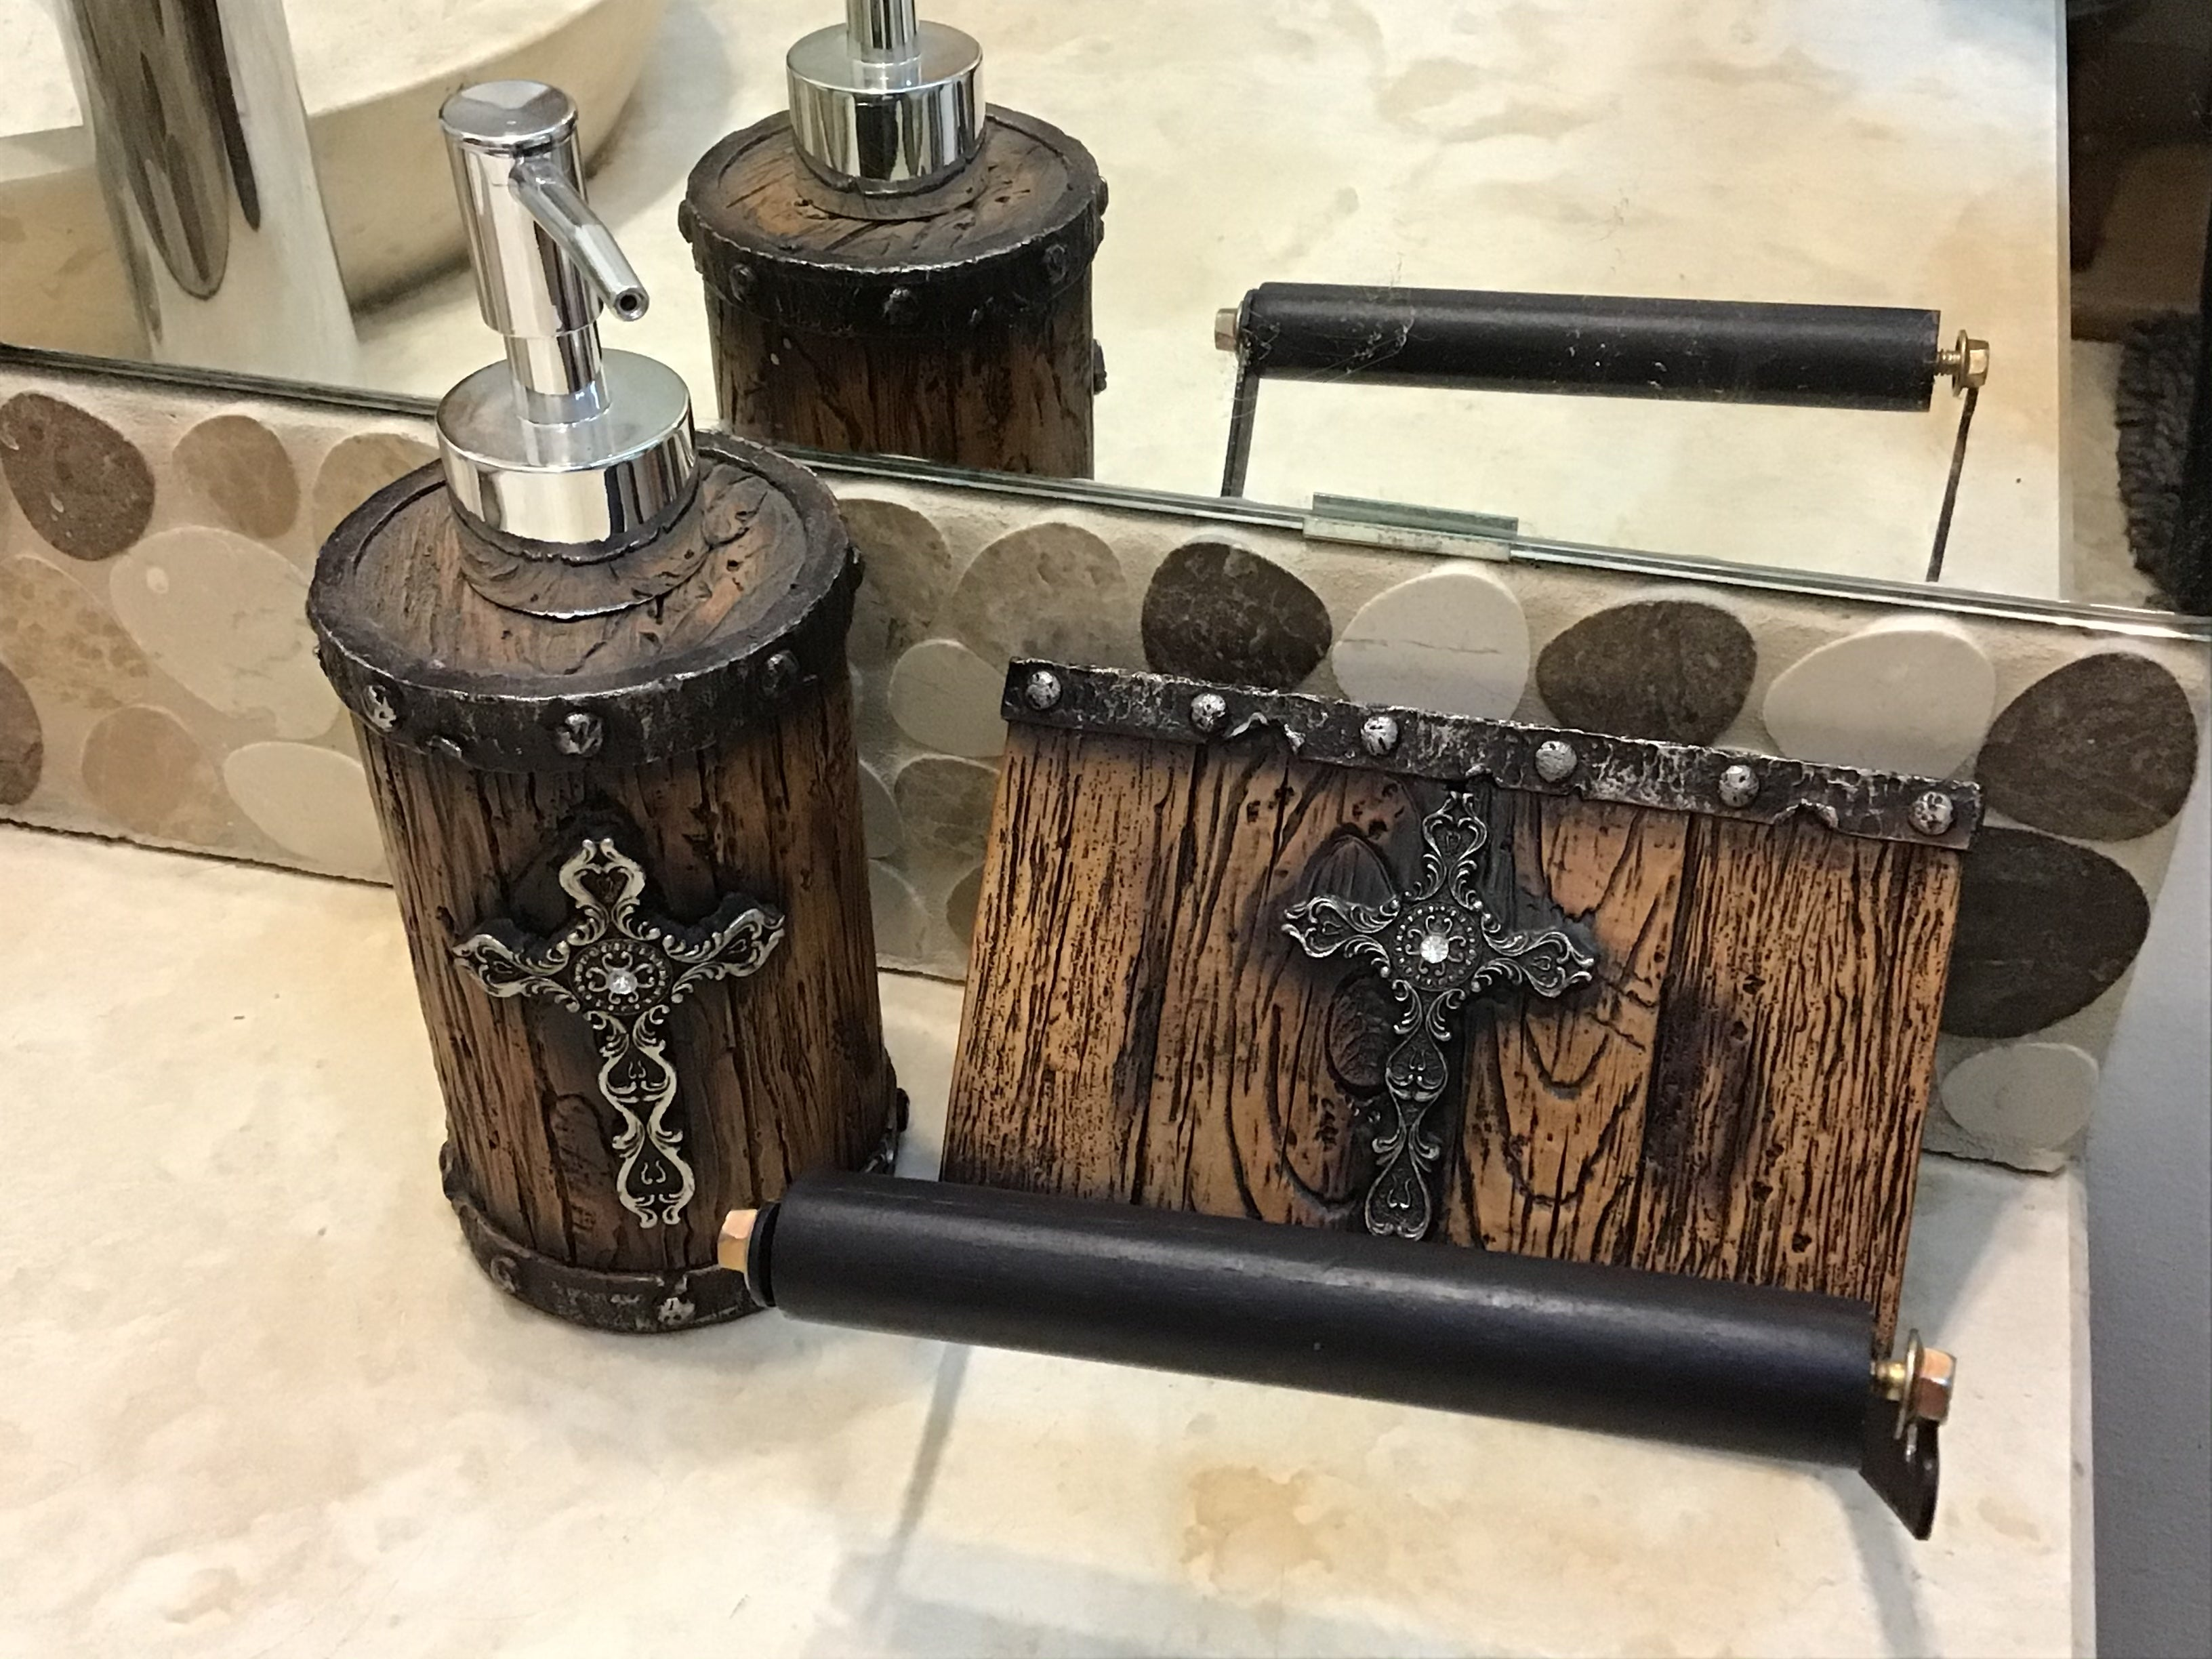 WOOD W/ SILVER CROSS TOILET PAPER HOLDER And soap pump each sold separately